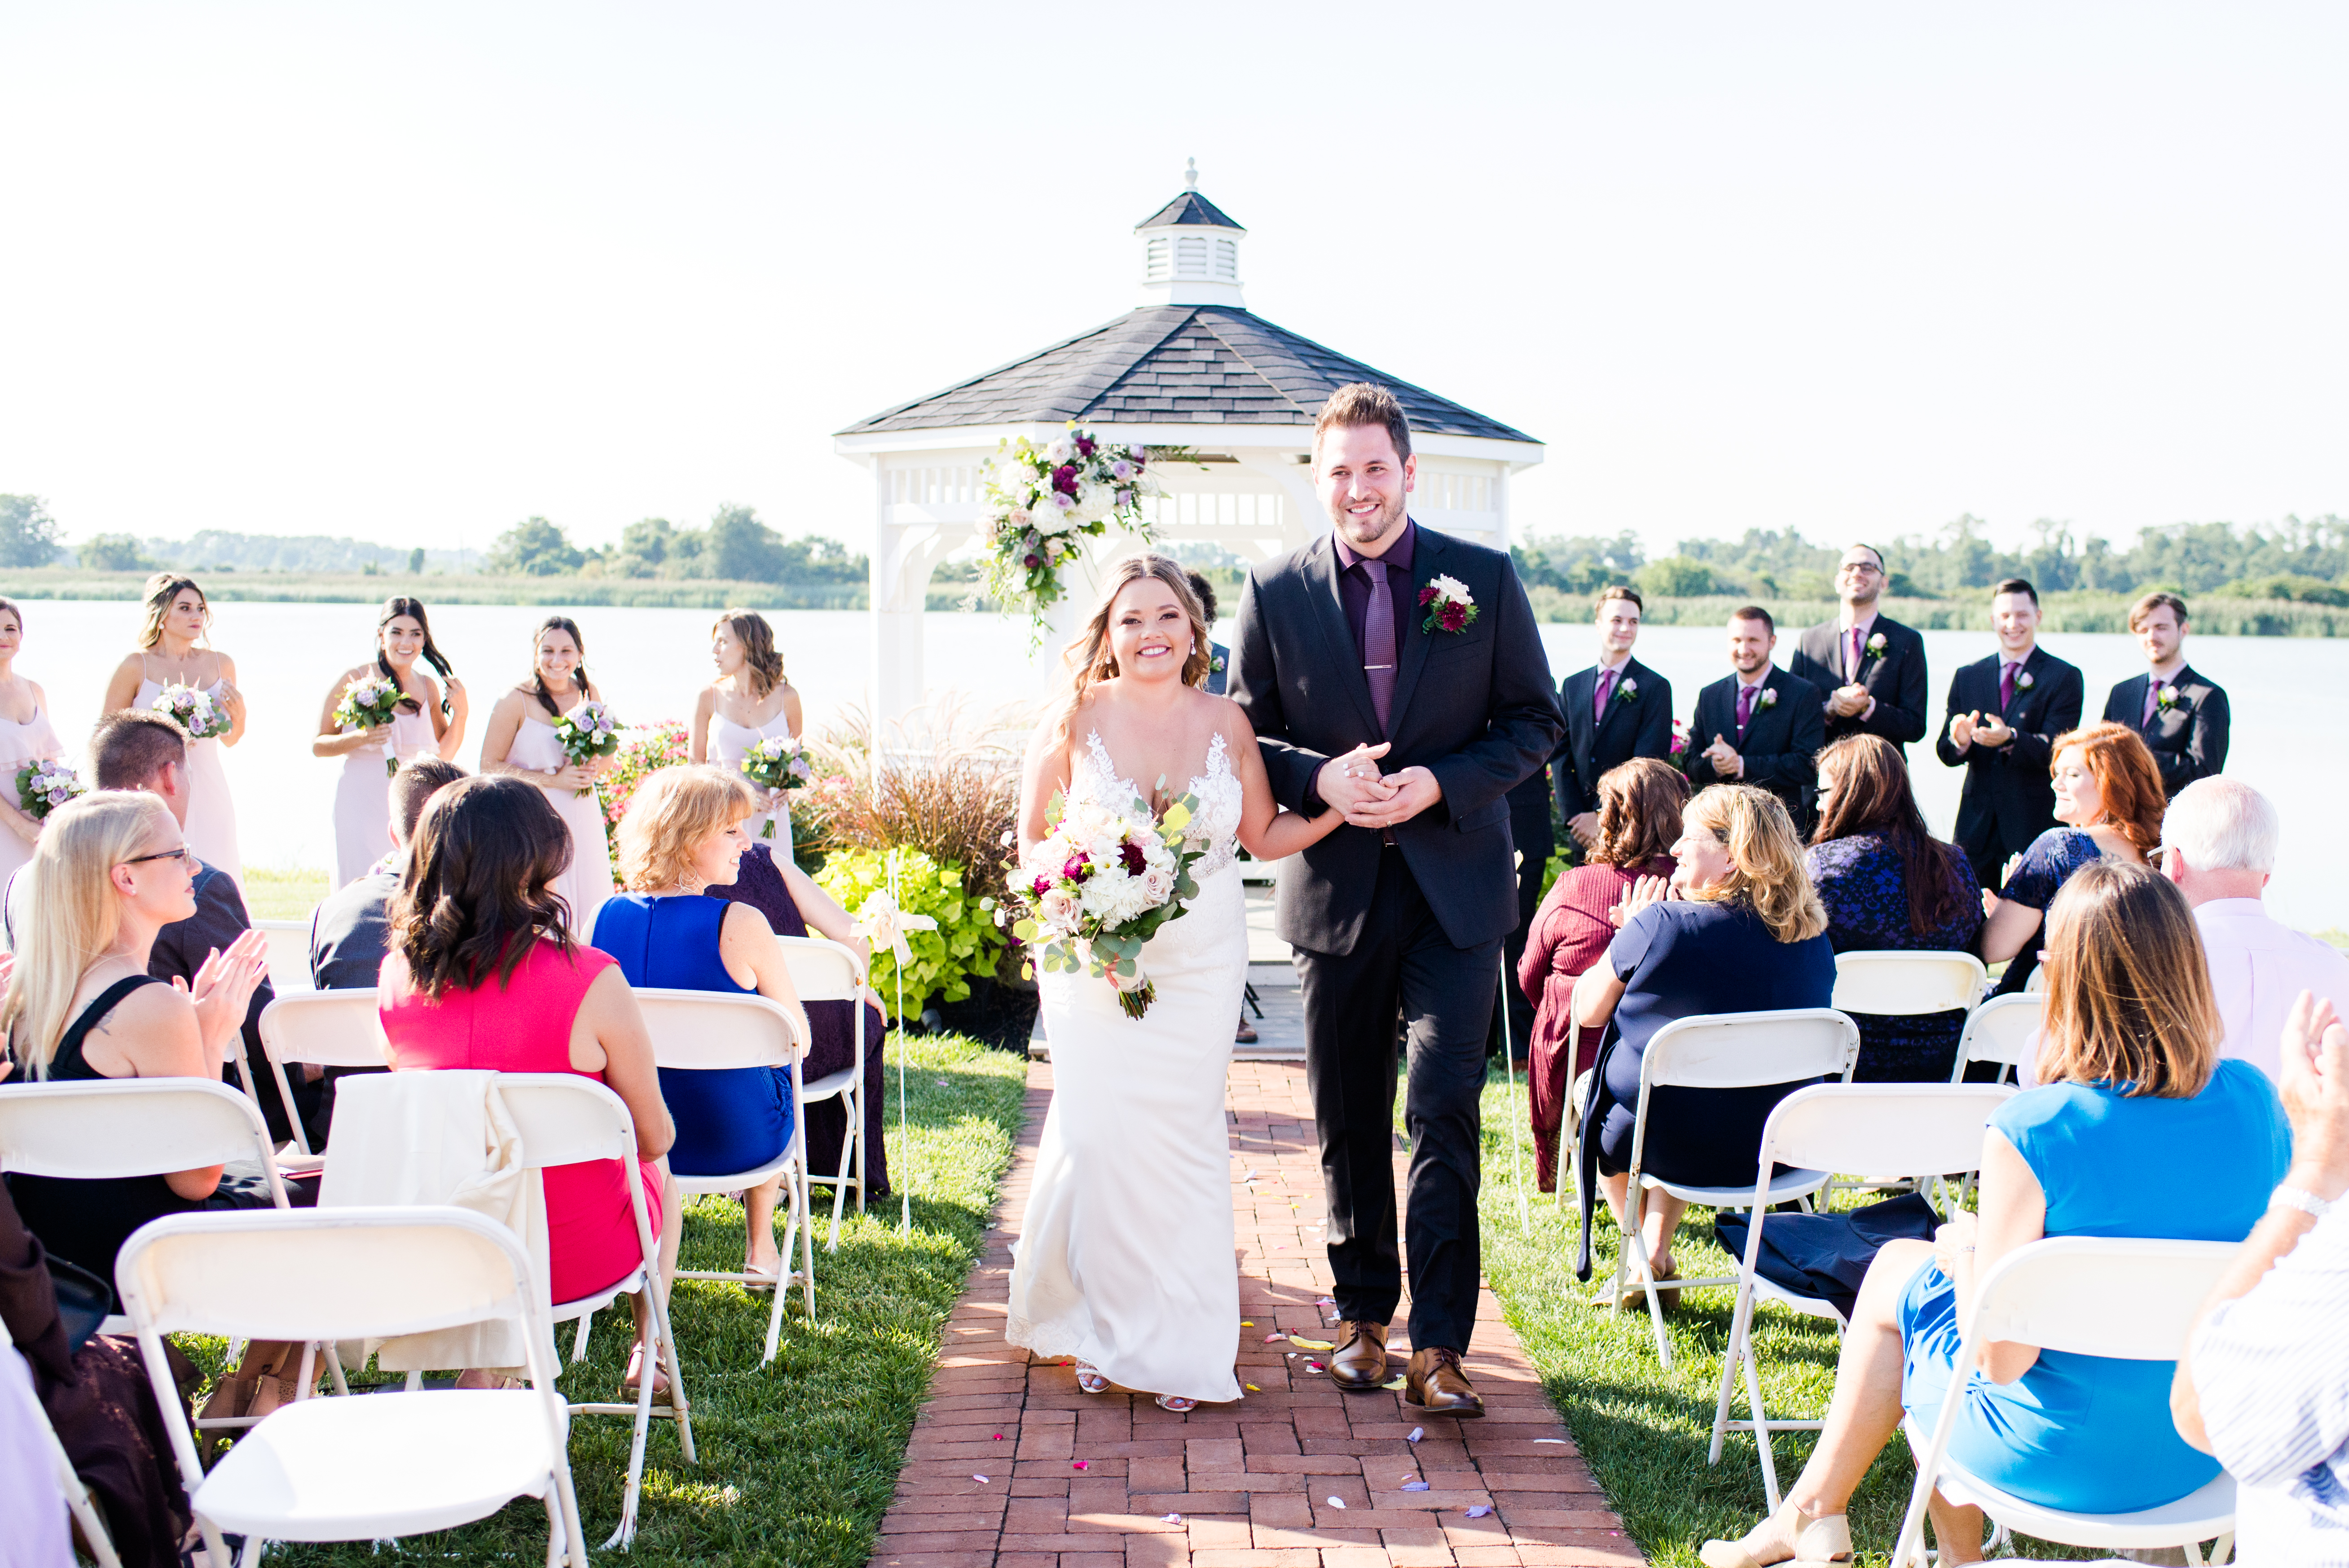 ceremony-thousand-acre-barn-wedding-andr